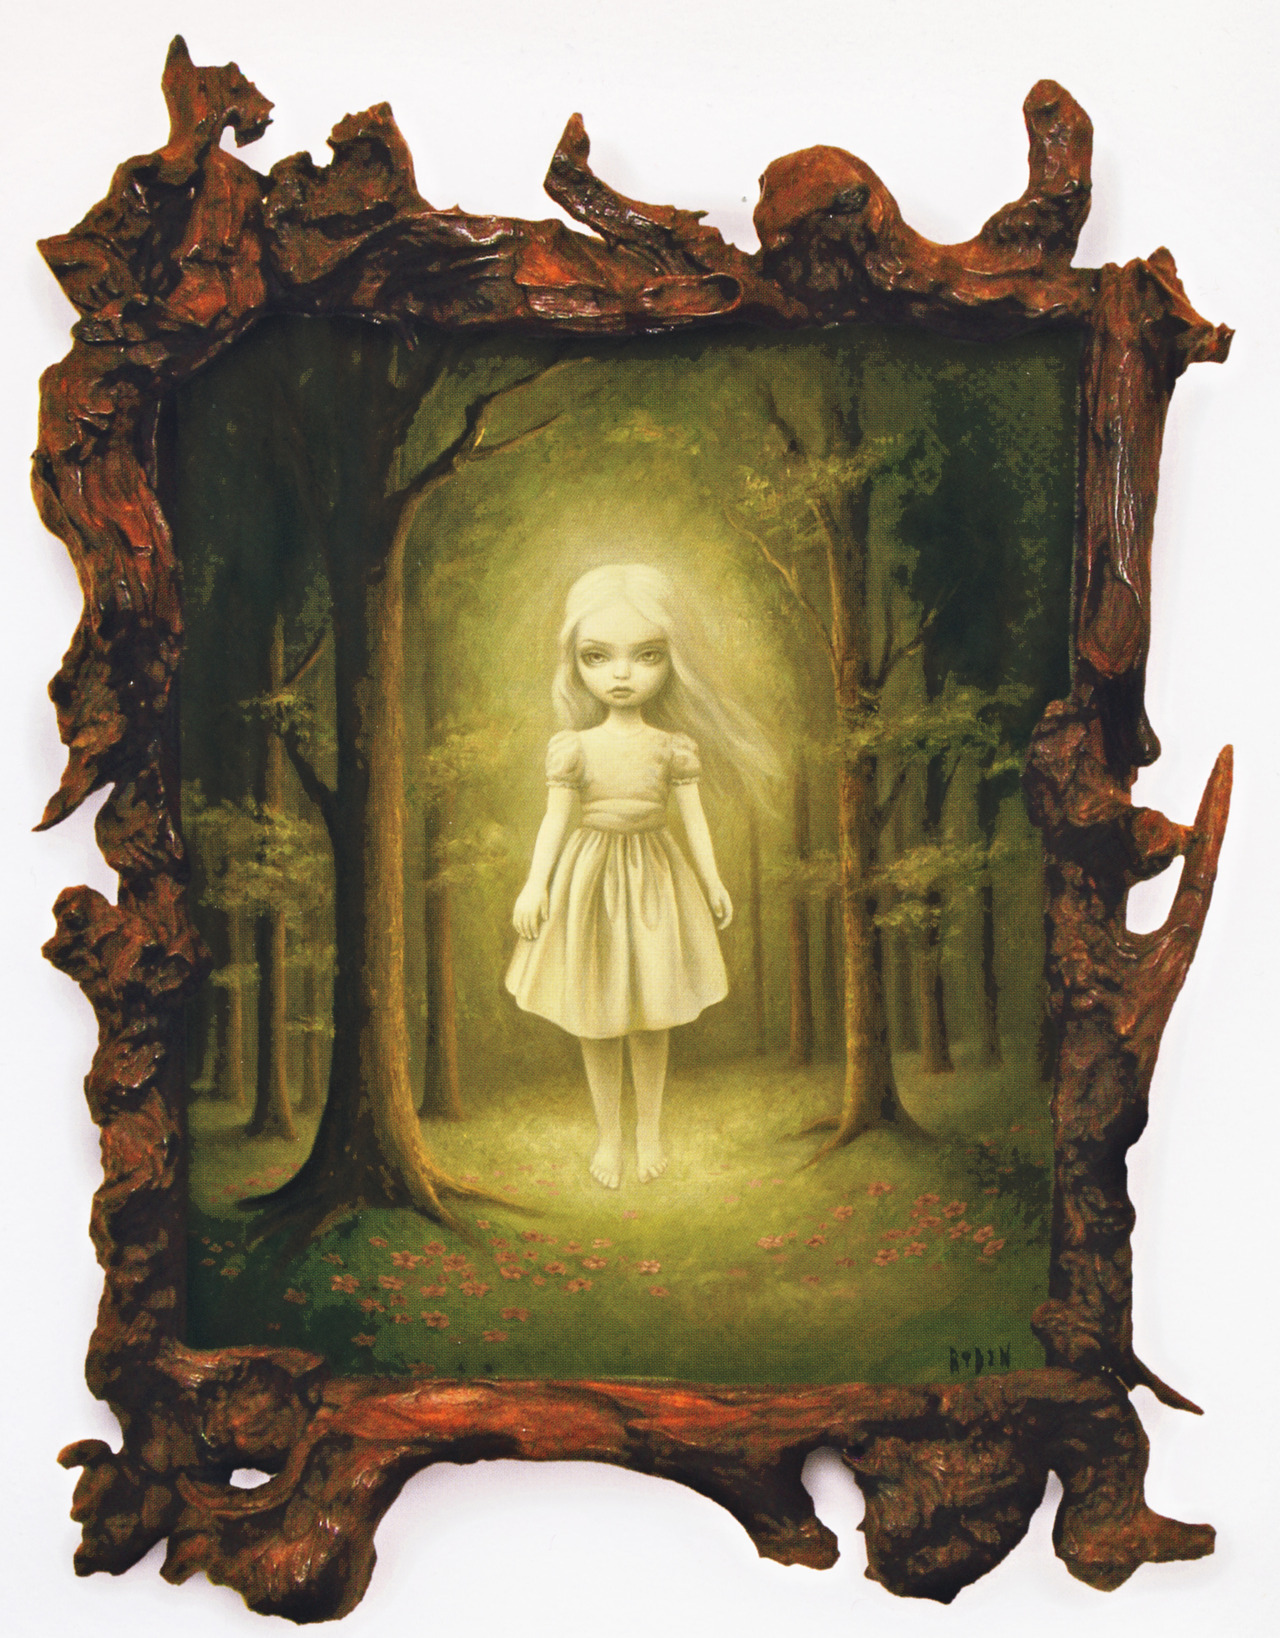 Ghost Girl (2006) by Mark Ryden